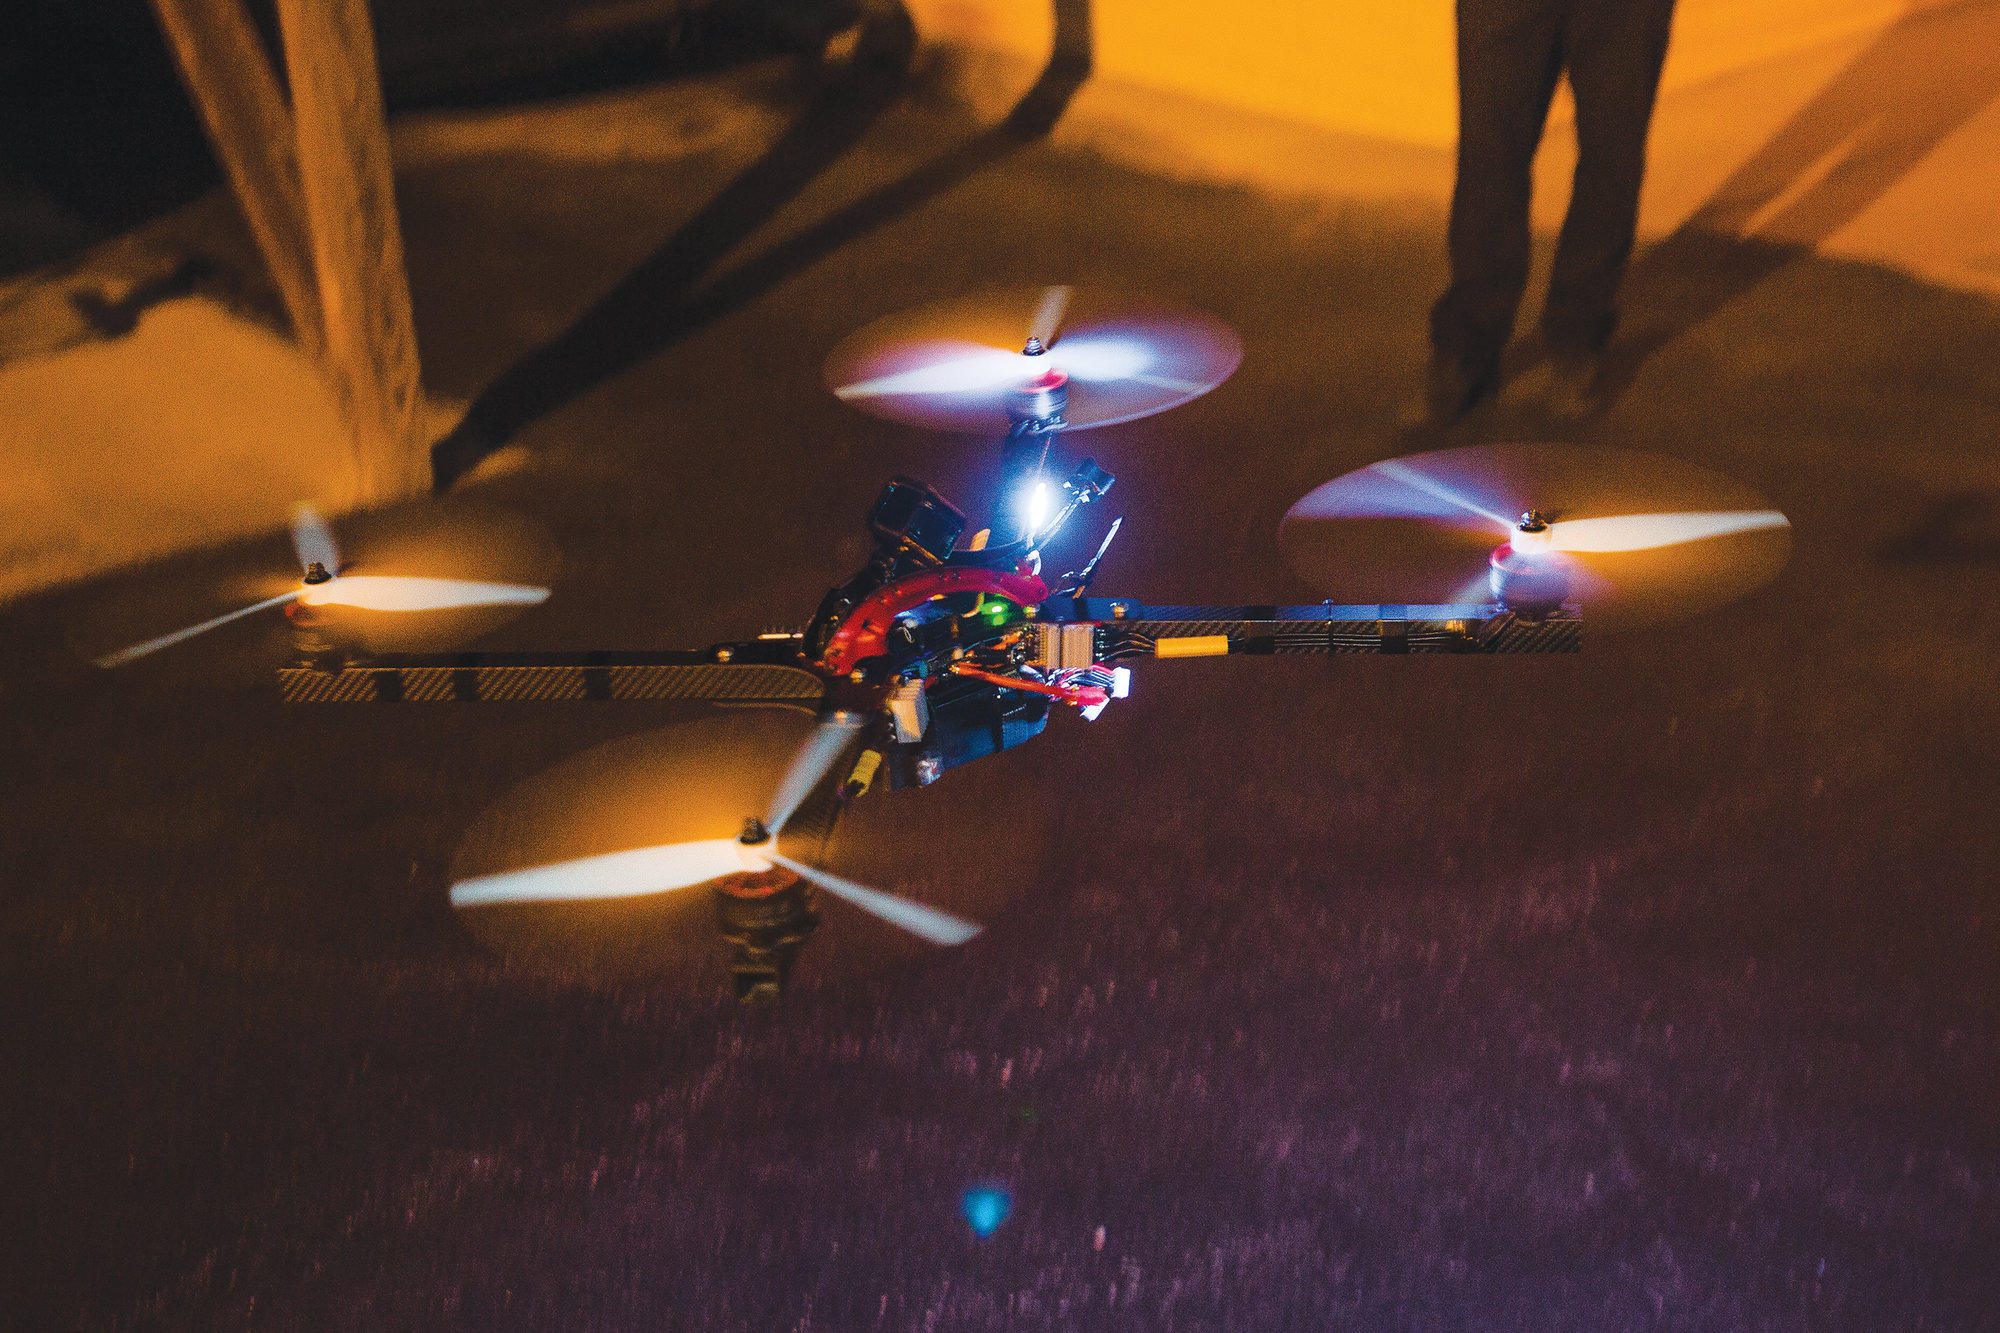 Matthew Tickel flys his racing drone outside his home in Sumter County in the days before leaving for South Korea to compete.